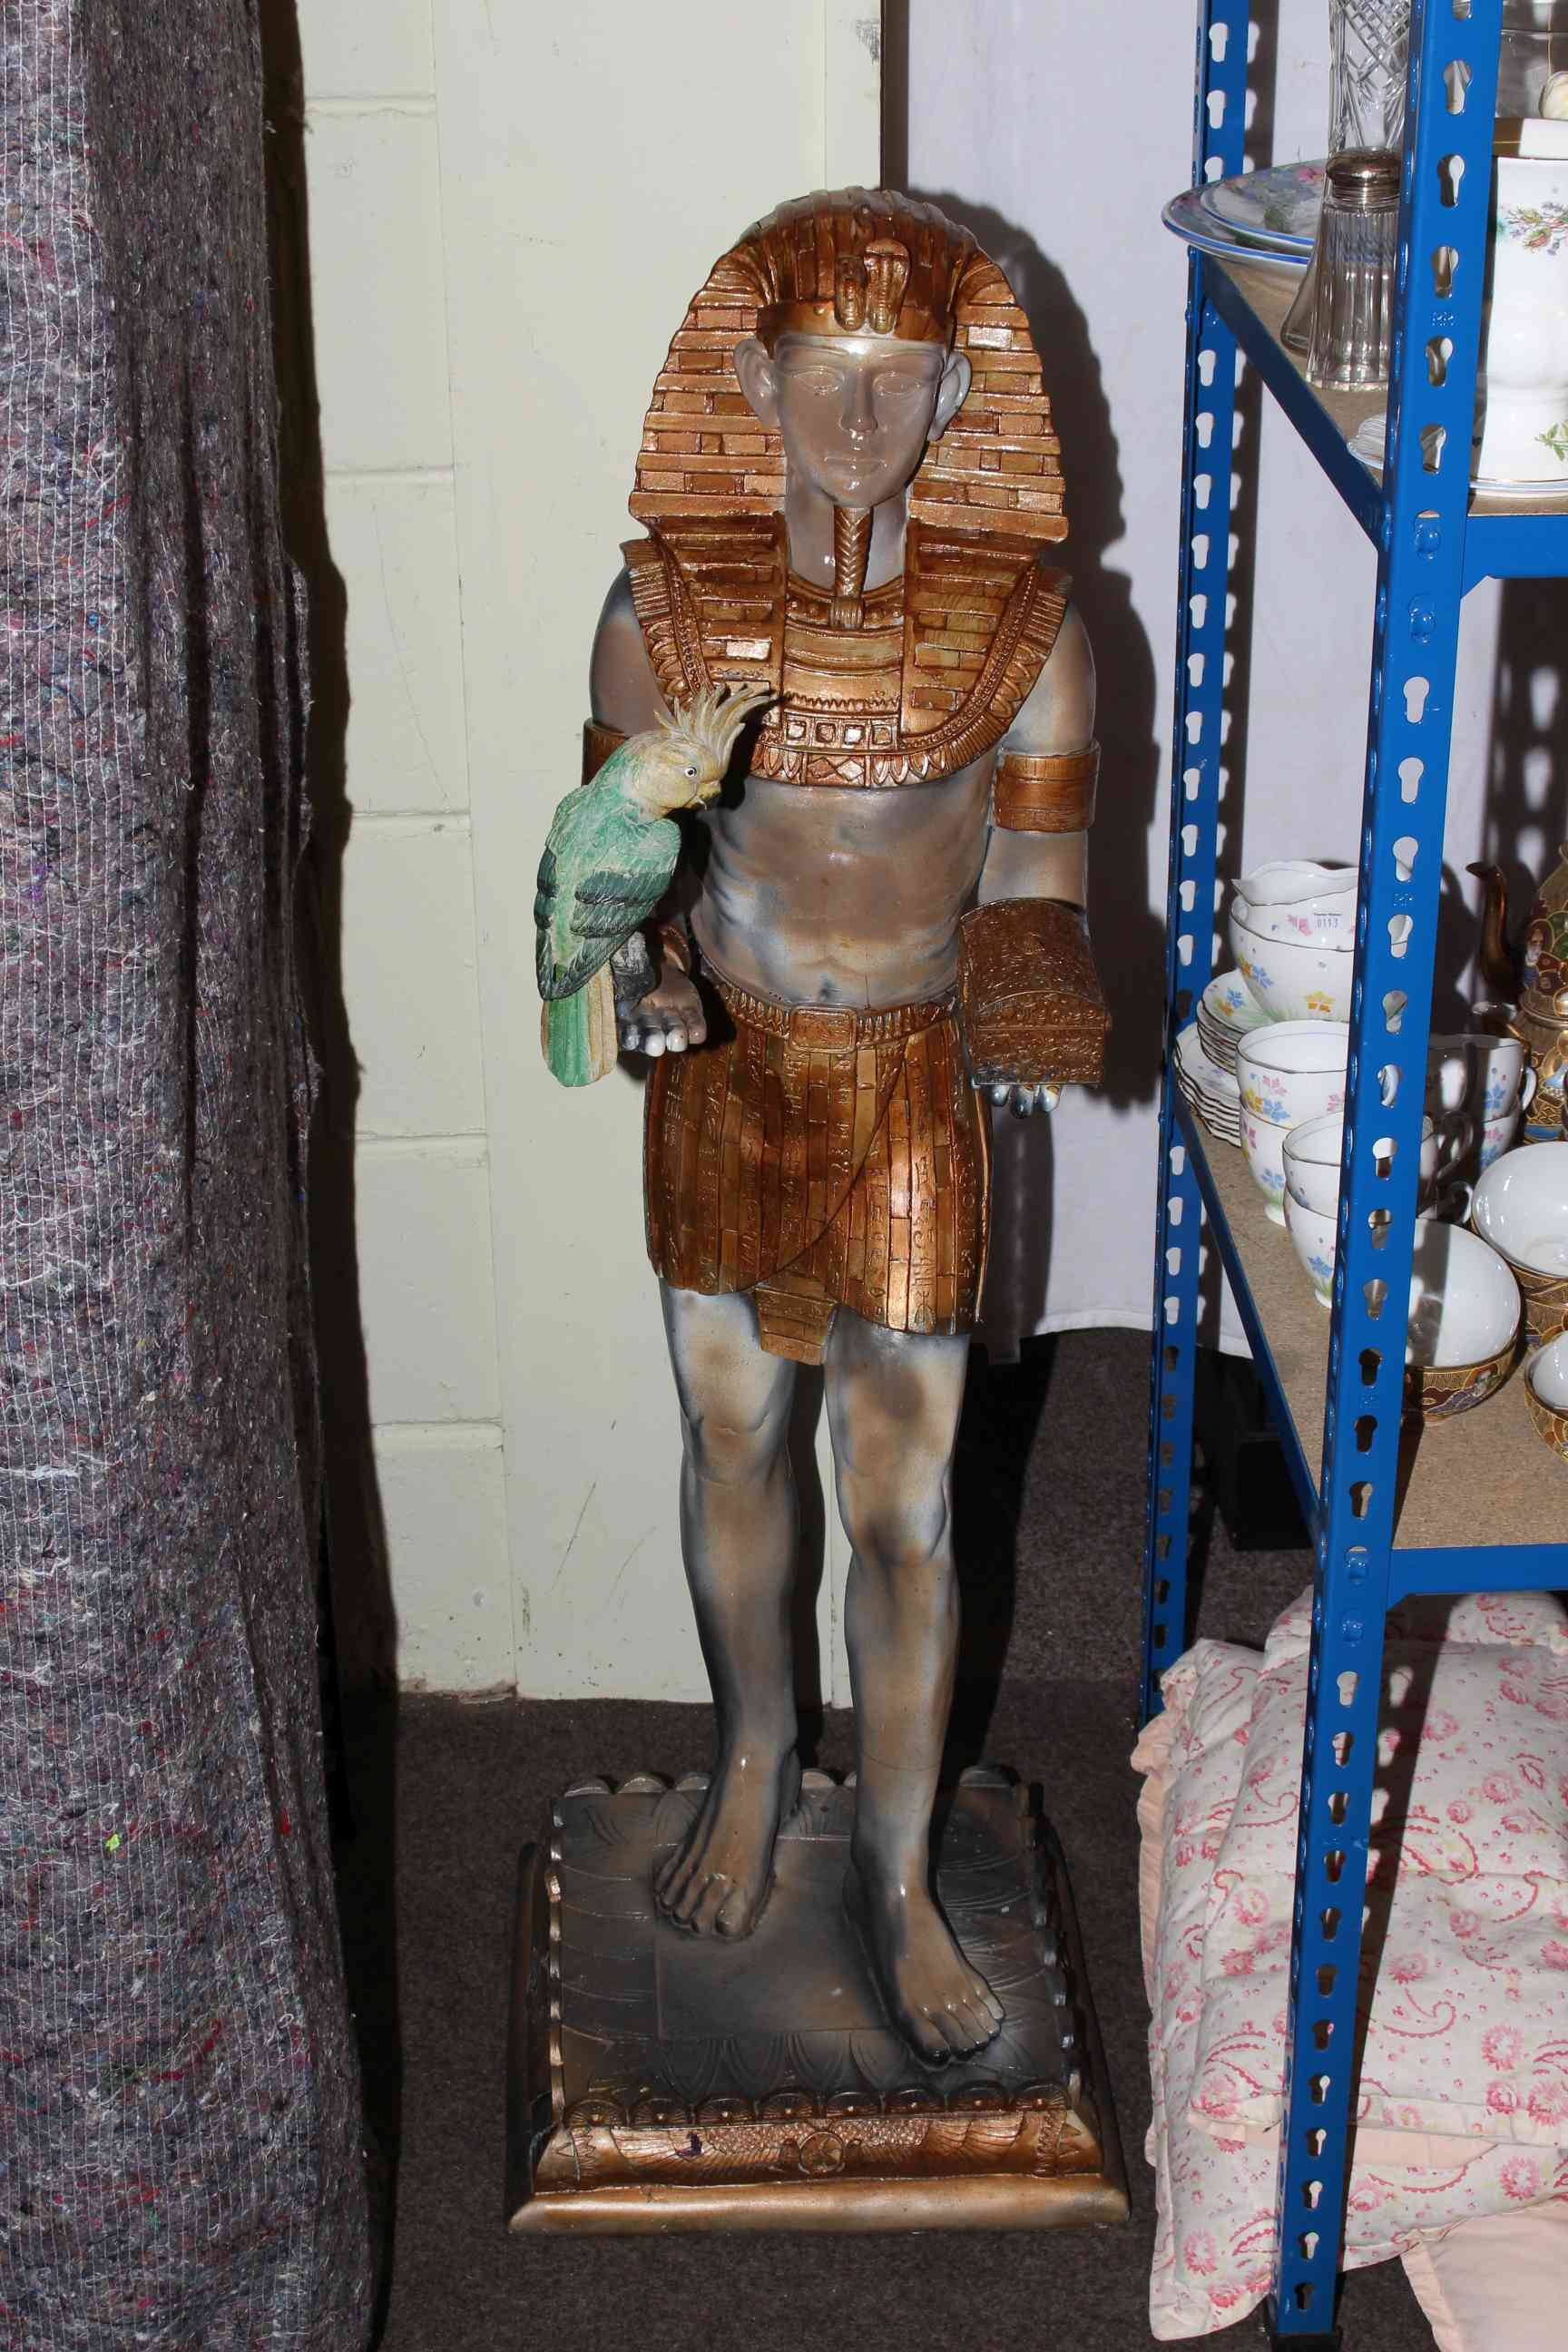 Egyptian plaster figure, Jack Sparrow figure, seated cat, planter and metal finial. - Image 2 of 2